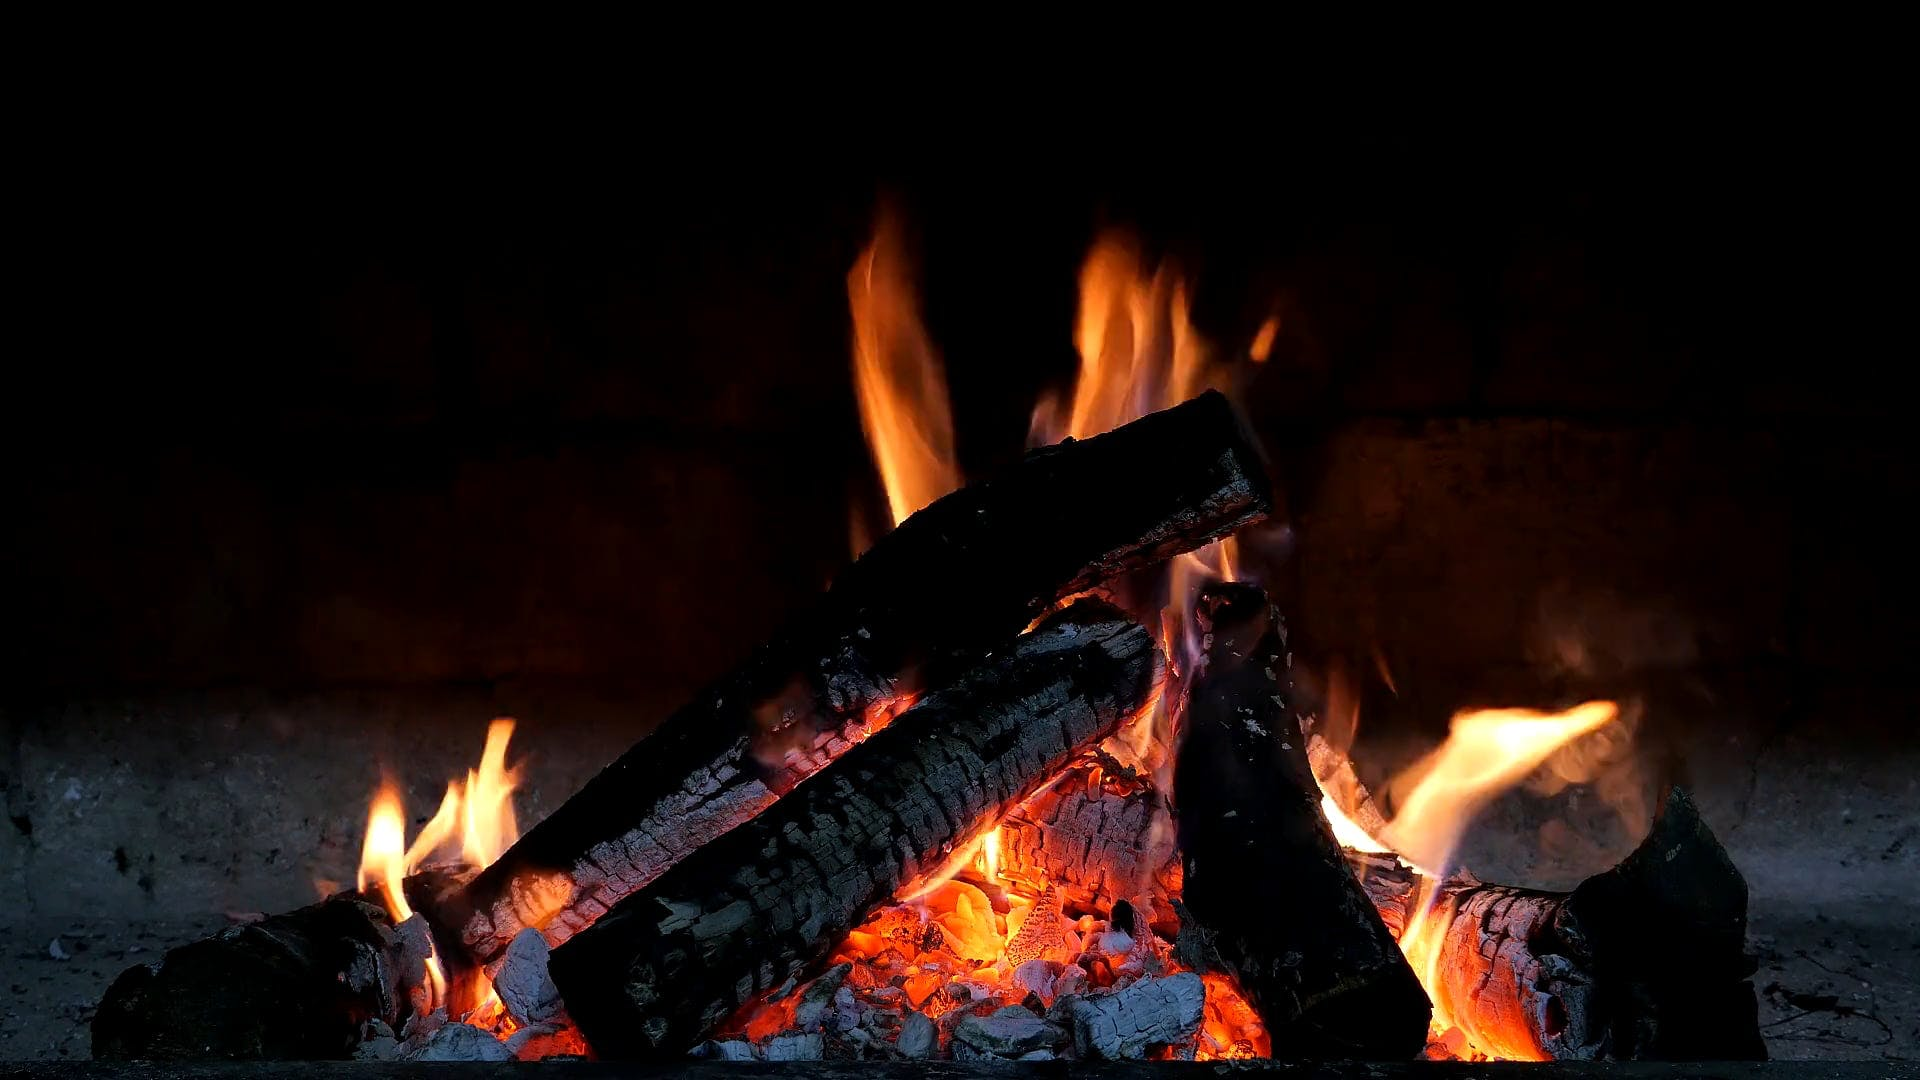 Burning Charcoal Fire